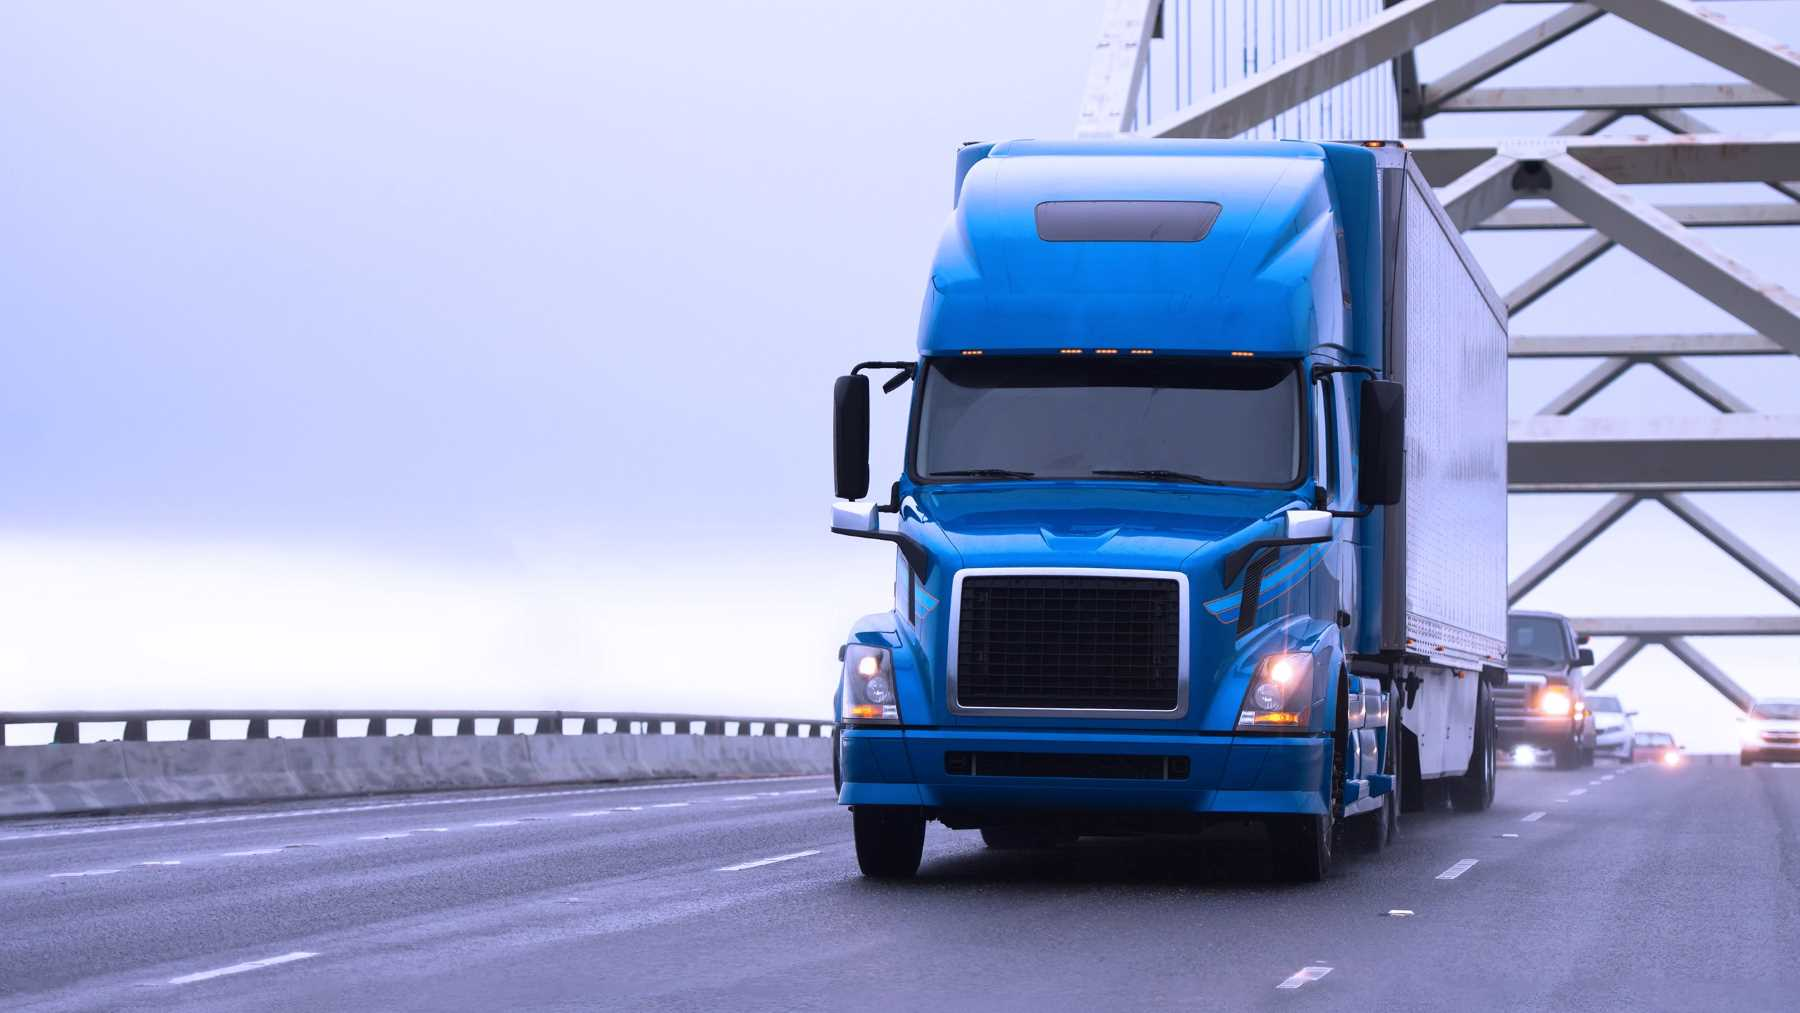 This week's top stories in supply chain and logistics: Chainalytics sells FMiC to DAT, US-Mexico truck crossings down 22% in April, Pilgrim's Pride and other poultry execs indicted on price-fixing, Ocean cargo rollovers on the rise and Amazon adds 12 more planes to its Air Cargo Fleet